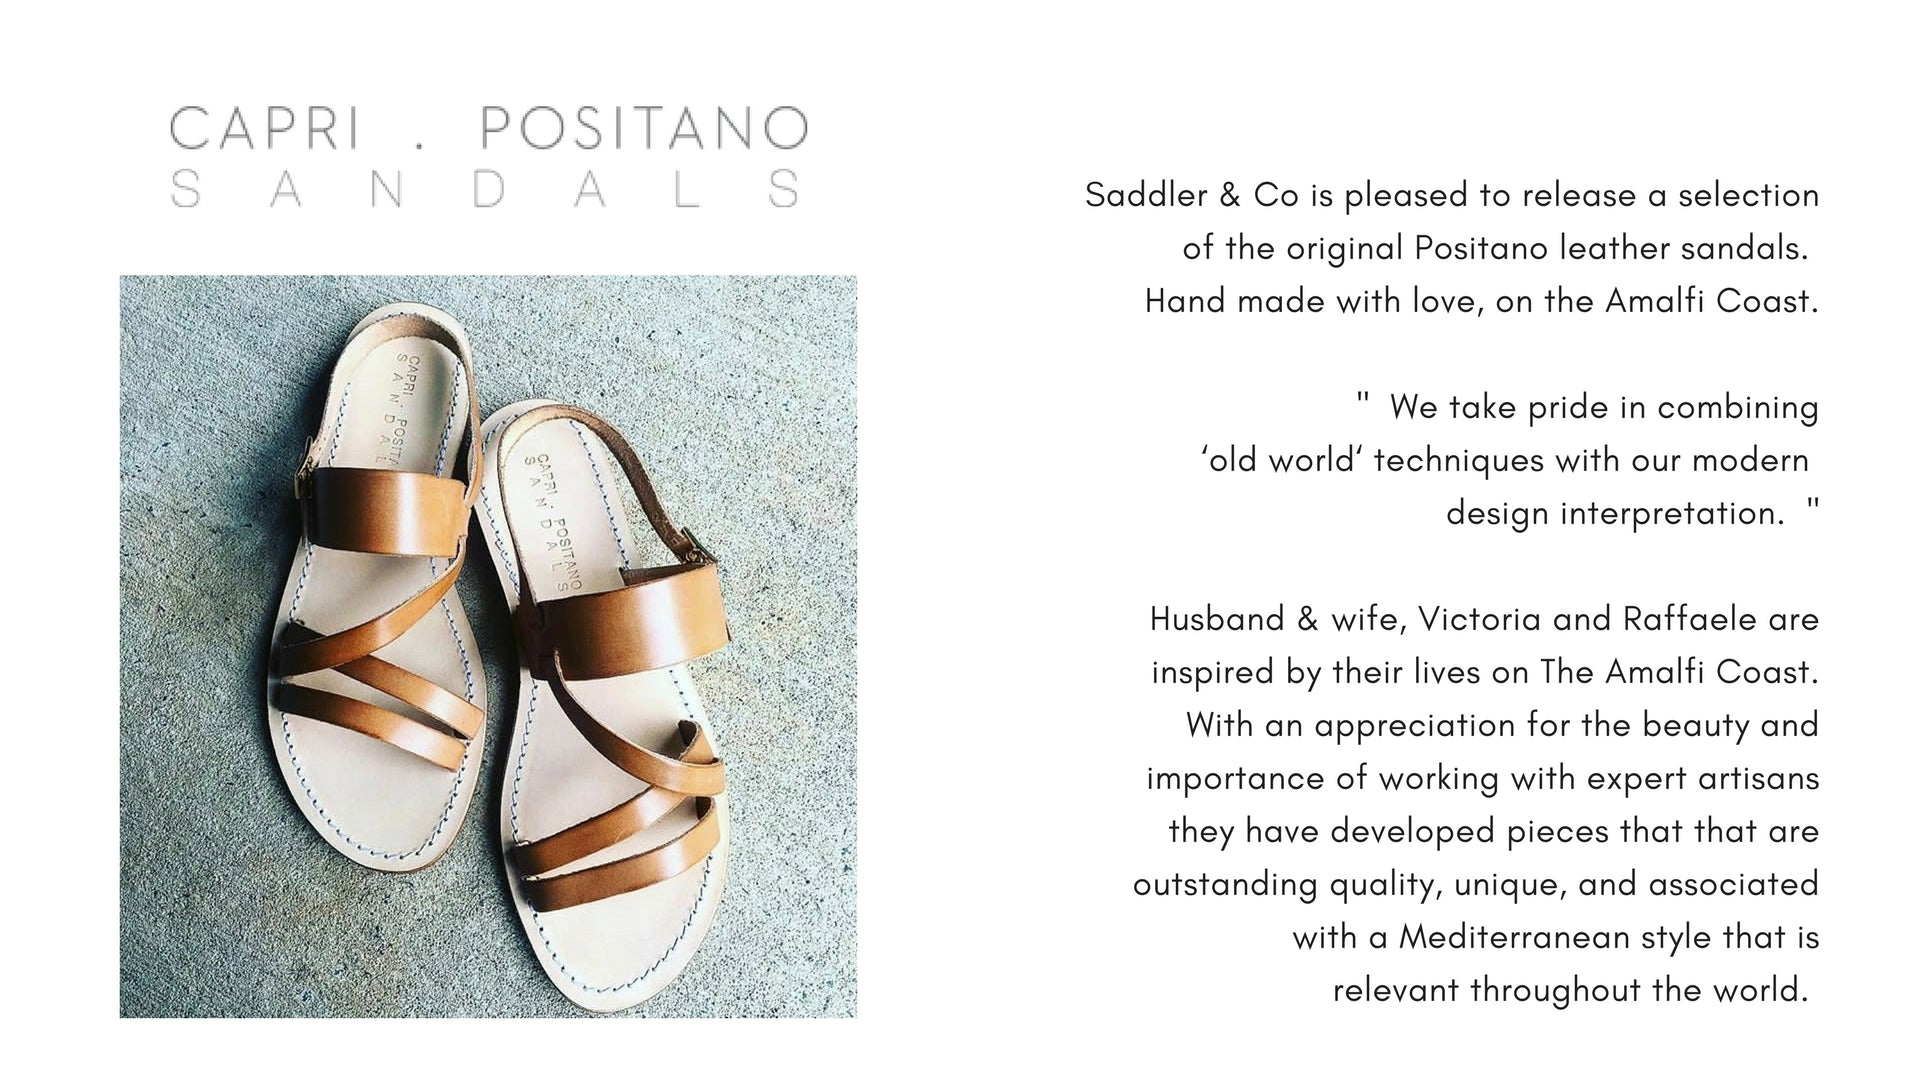 Capri Positano Hand Made Leather Sandals